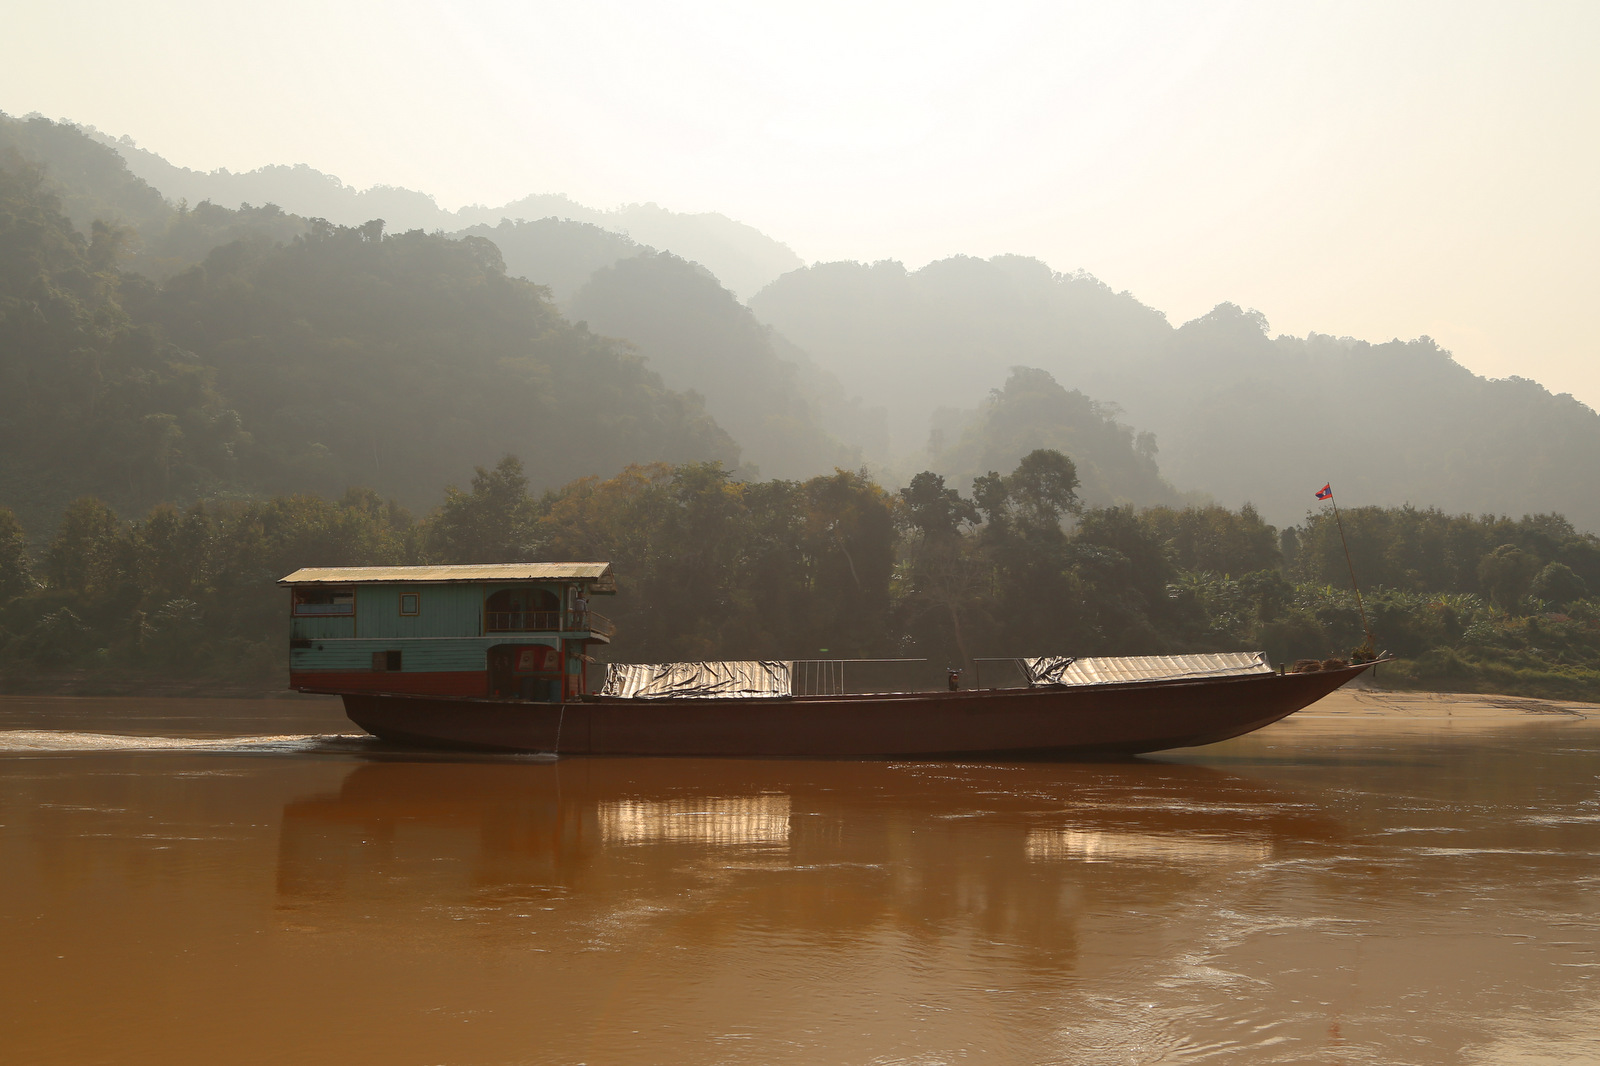 Mekong cruise, day two